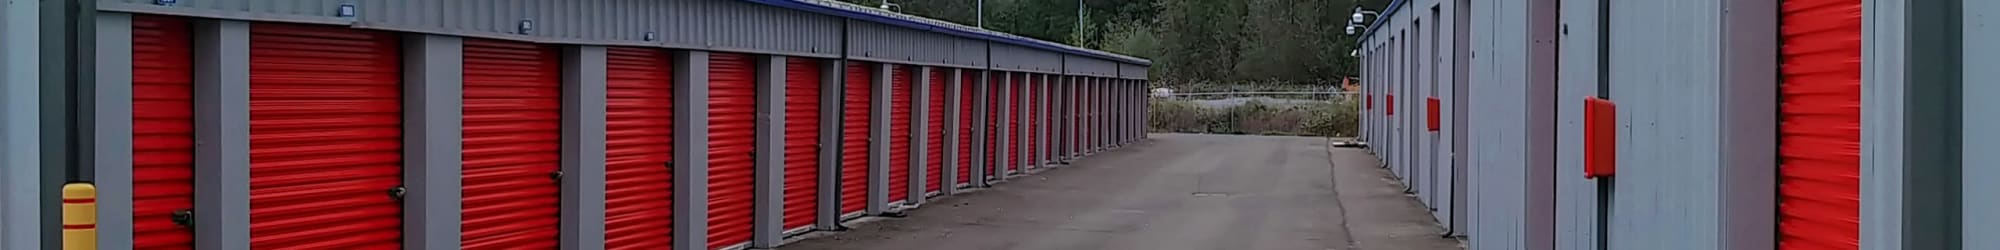 Trojan Storage units for rent in Bothell, Washington